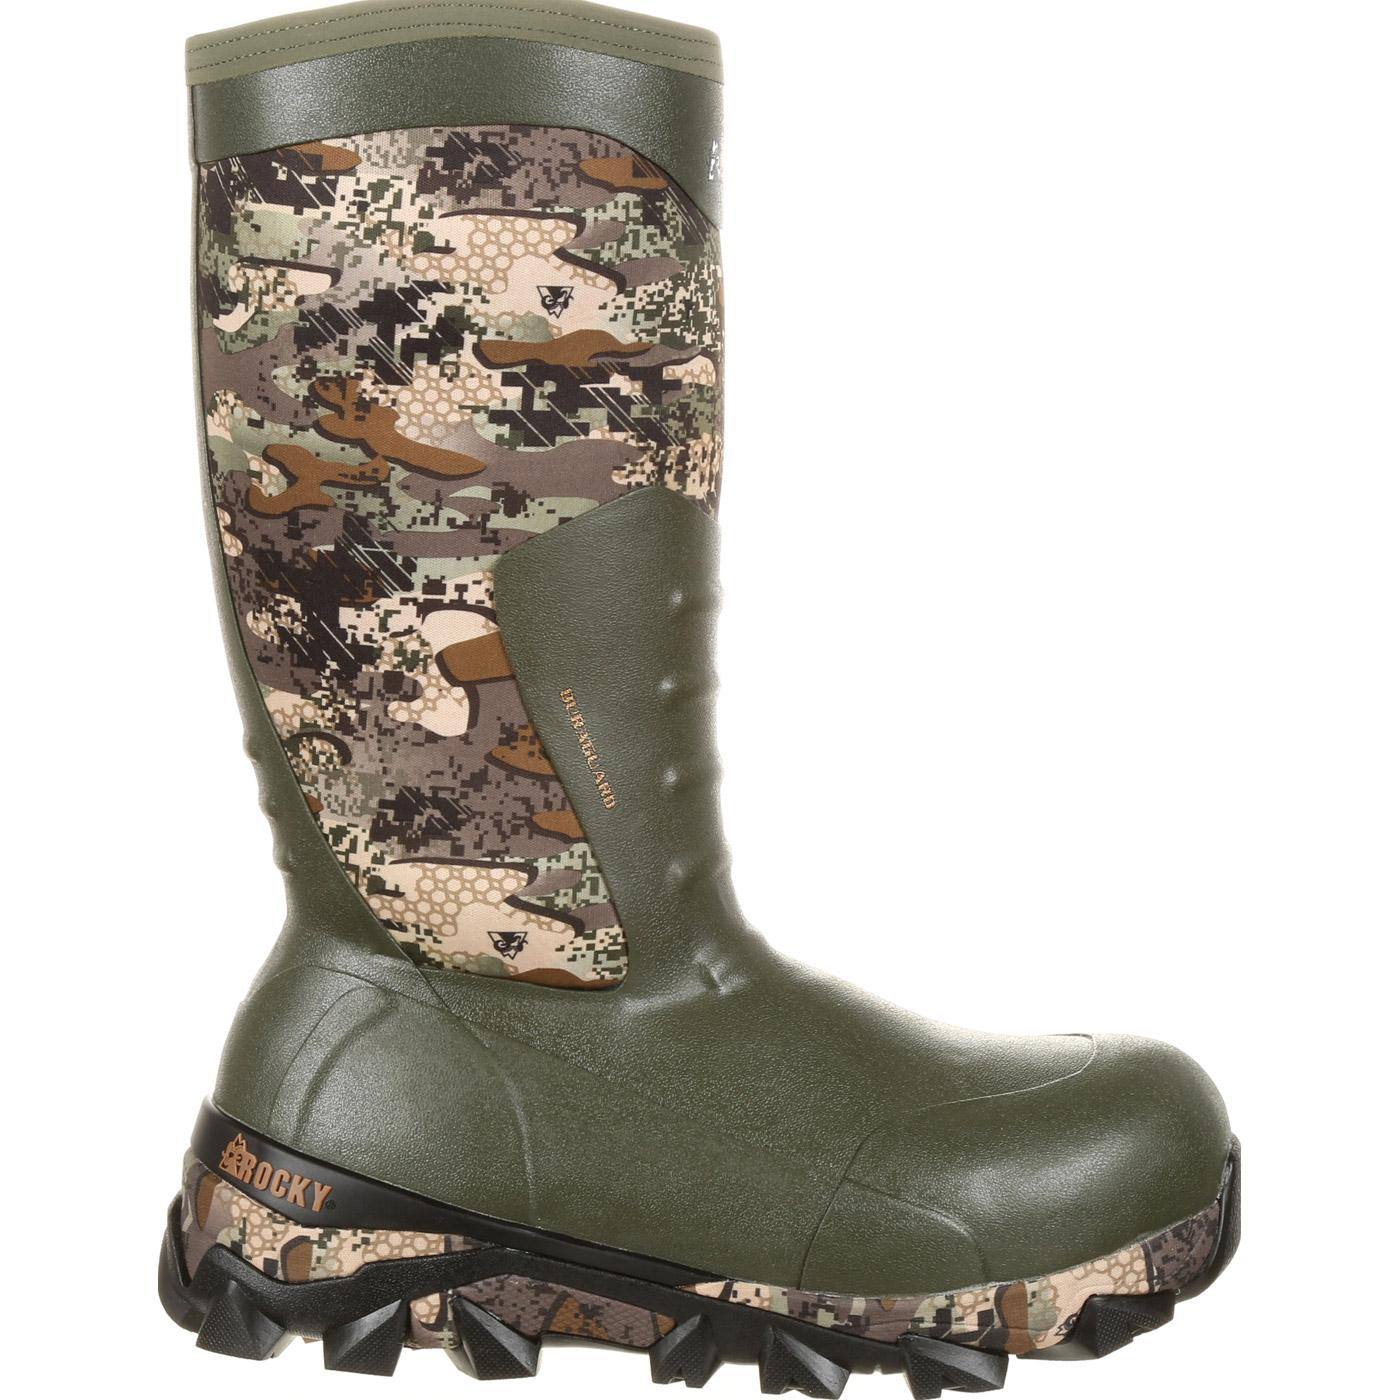 Rocky Claw Rubber Waterproof 1200g Insulated Boot Rks0329